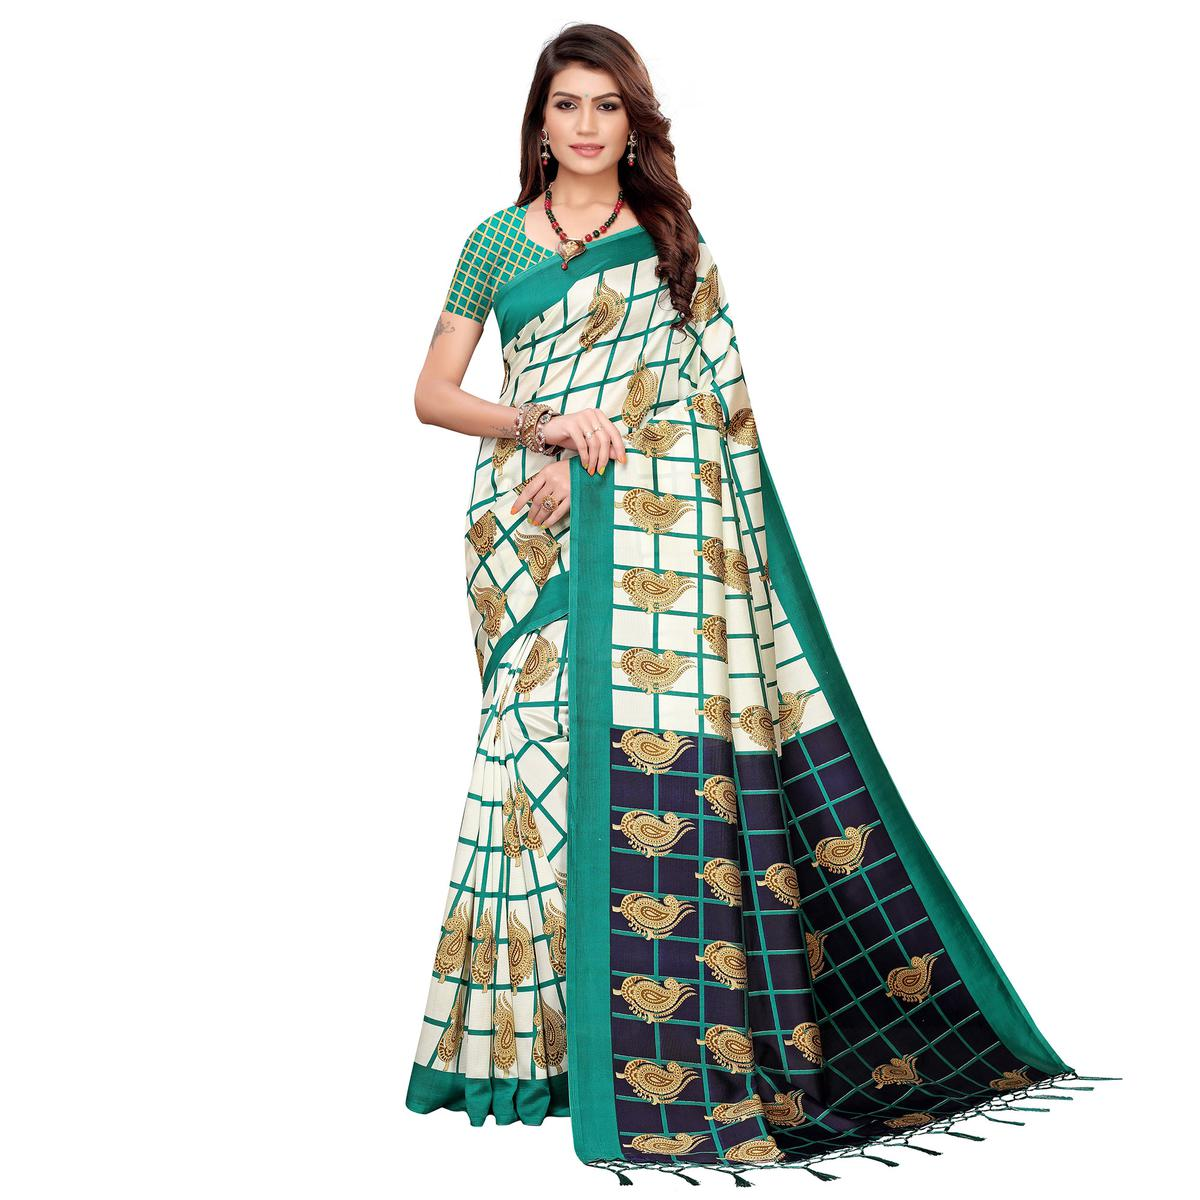 Glorious Off White-Green Colored Festive Wear Printed Art Silk Saree